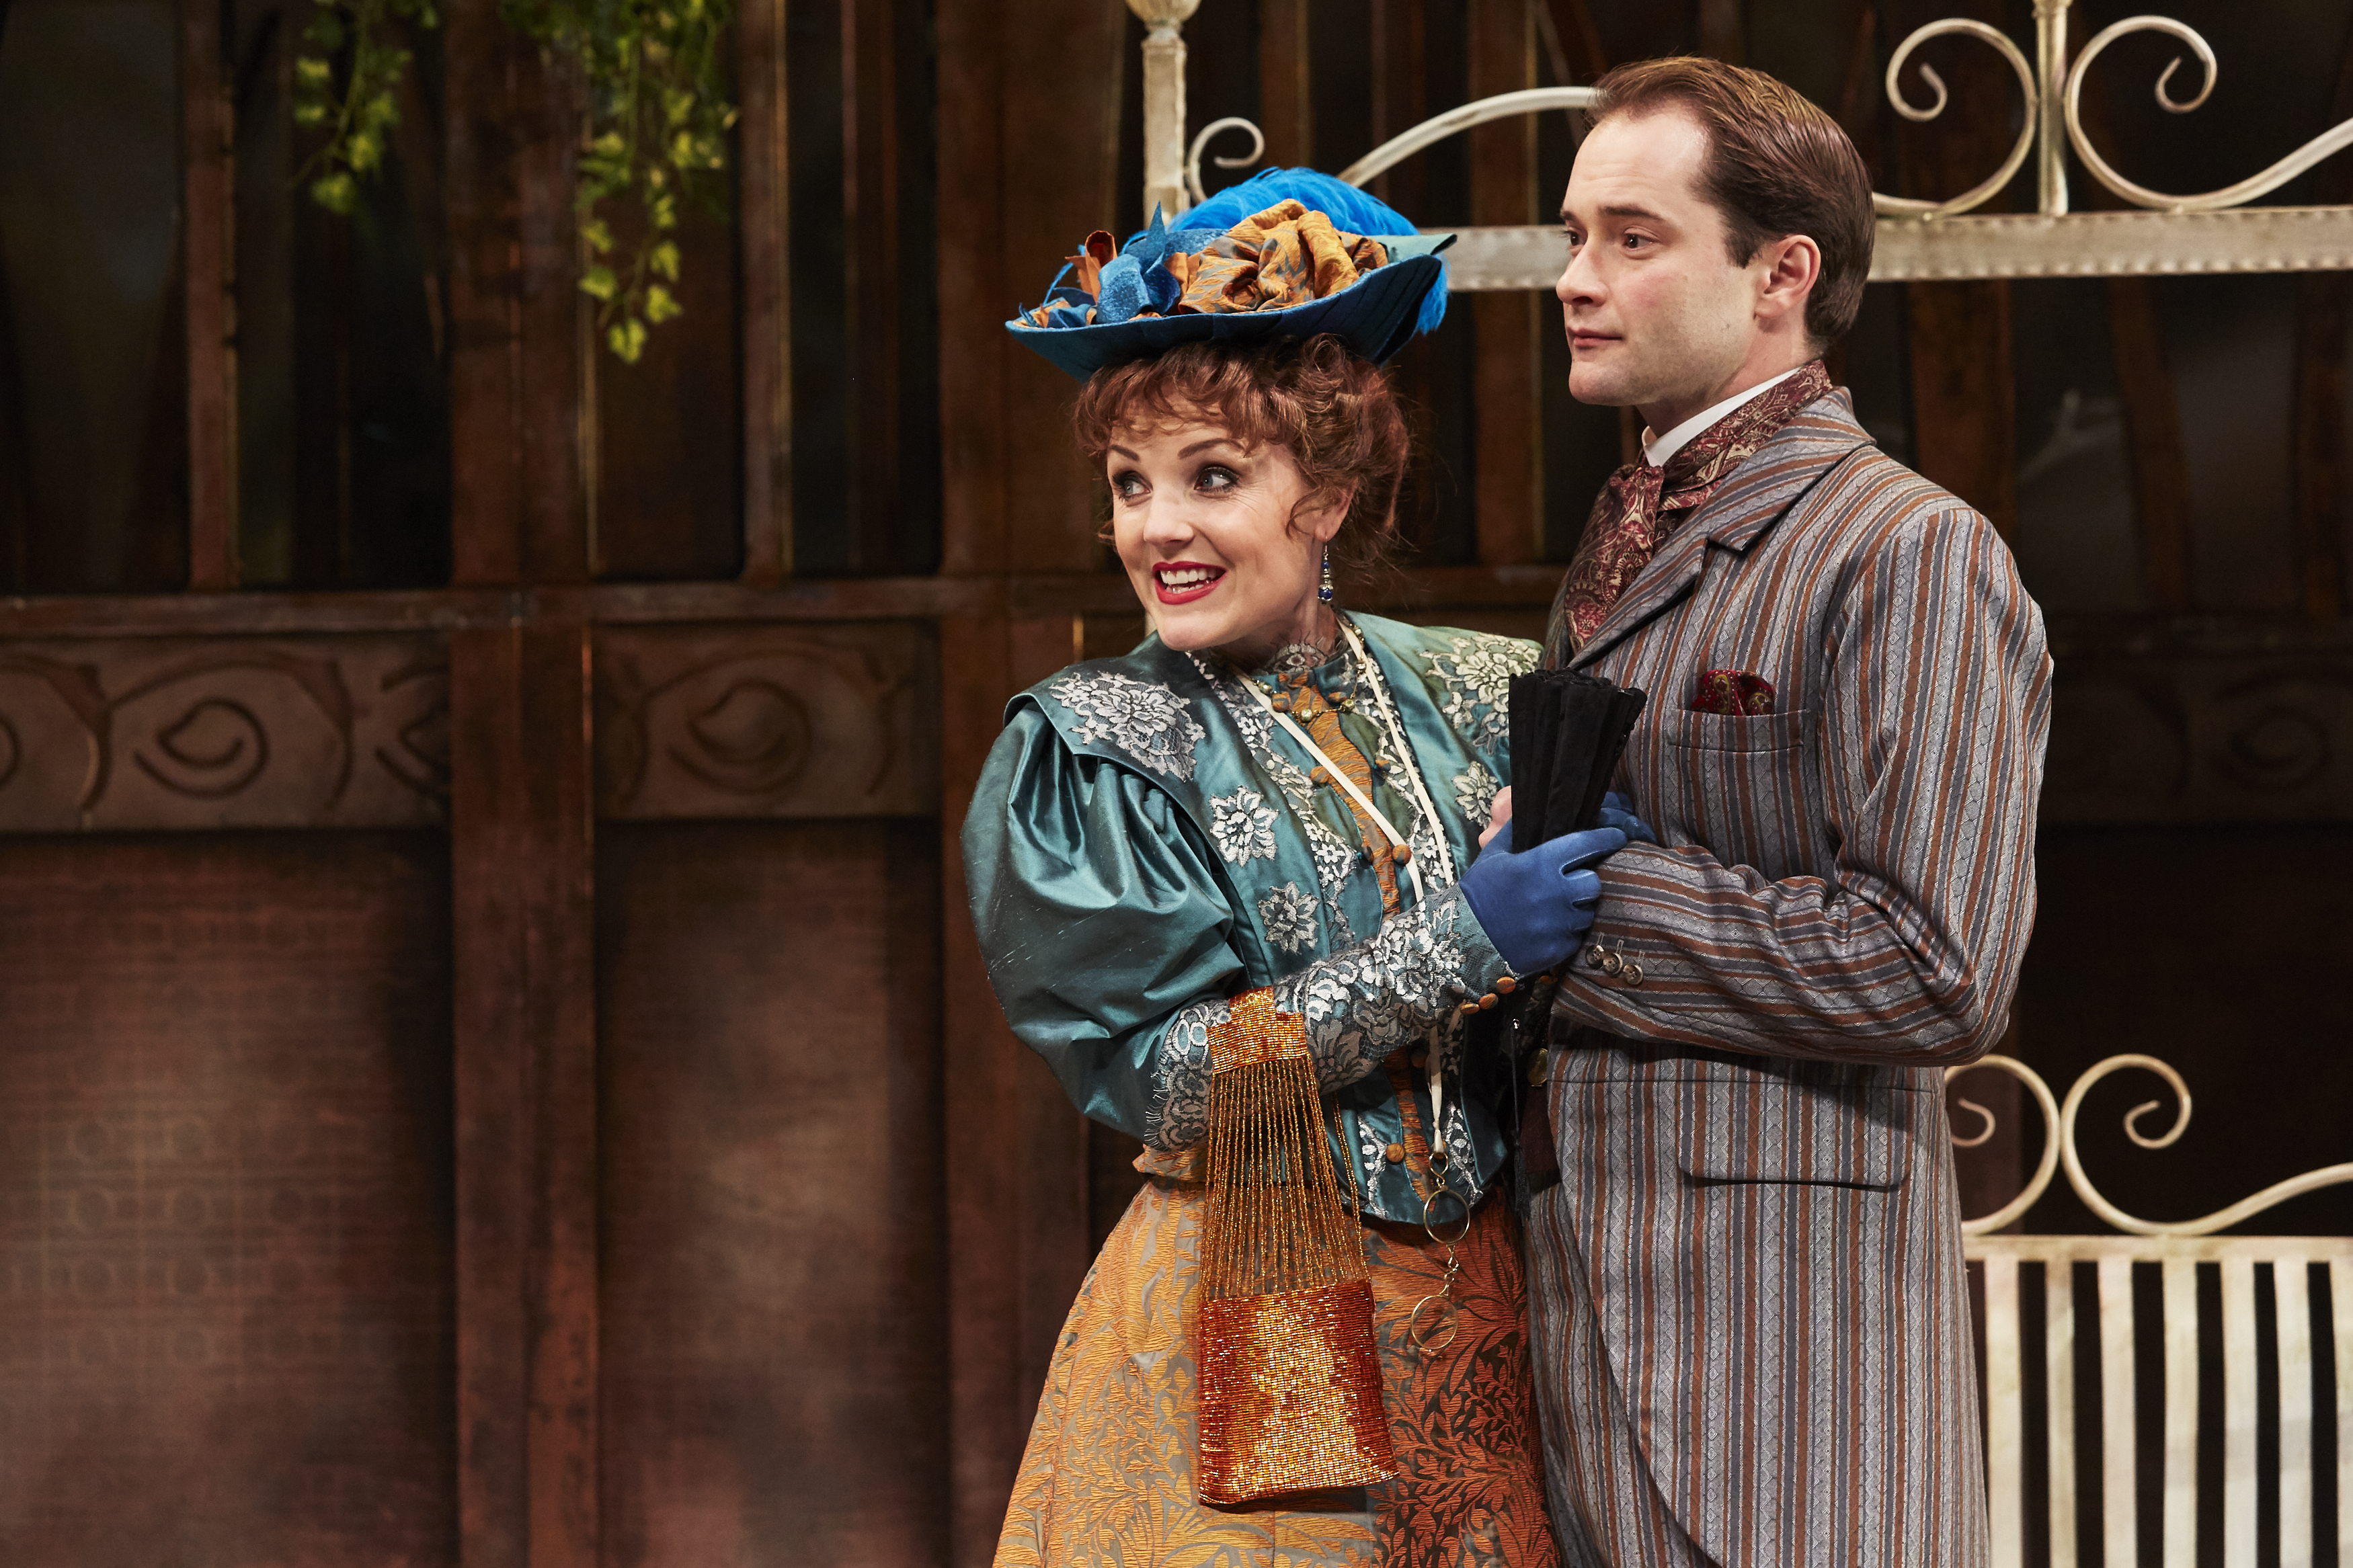 Kerry Ellis as Gwendolen & Peter Sandys-Clarke as Jack in THE IMPORTANCE OF BEING EARNEST, credit The Other Richard (2)